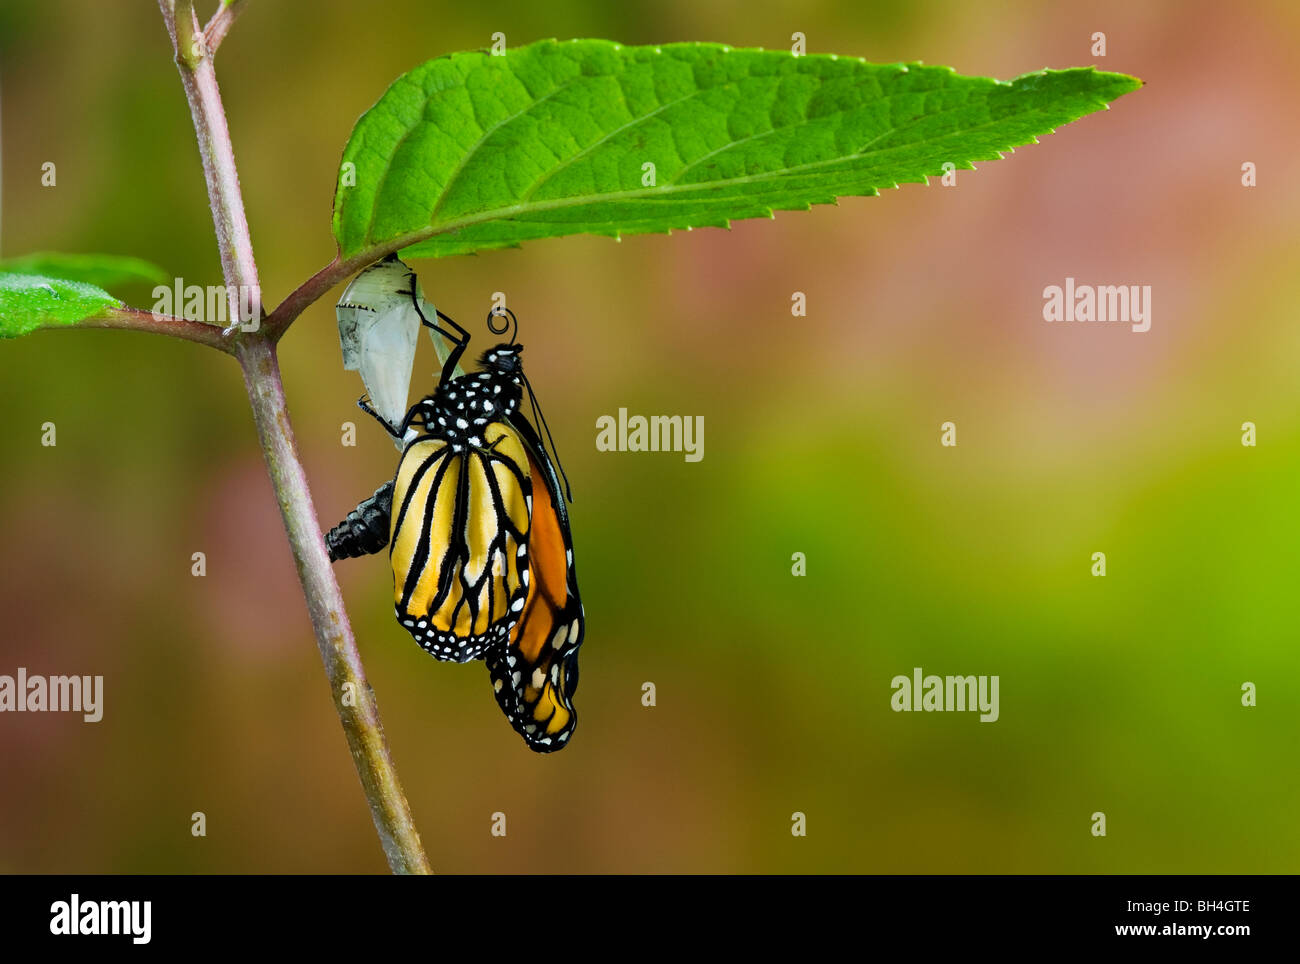 Monarch butterfly emerged from cocoon, empty chrysalis, pumping meconium from abdomen into wings, Nova Scotia. Series - Stock Image